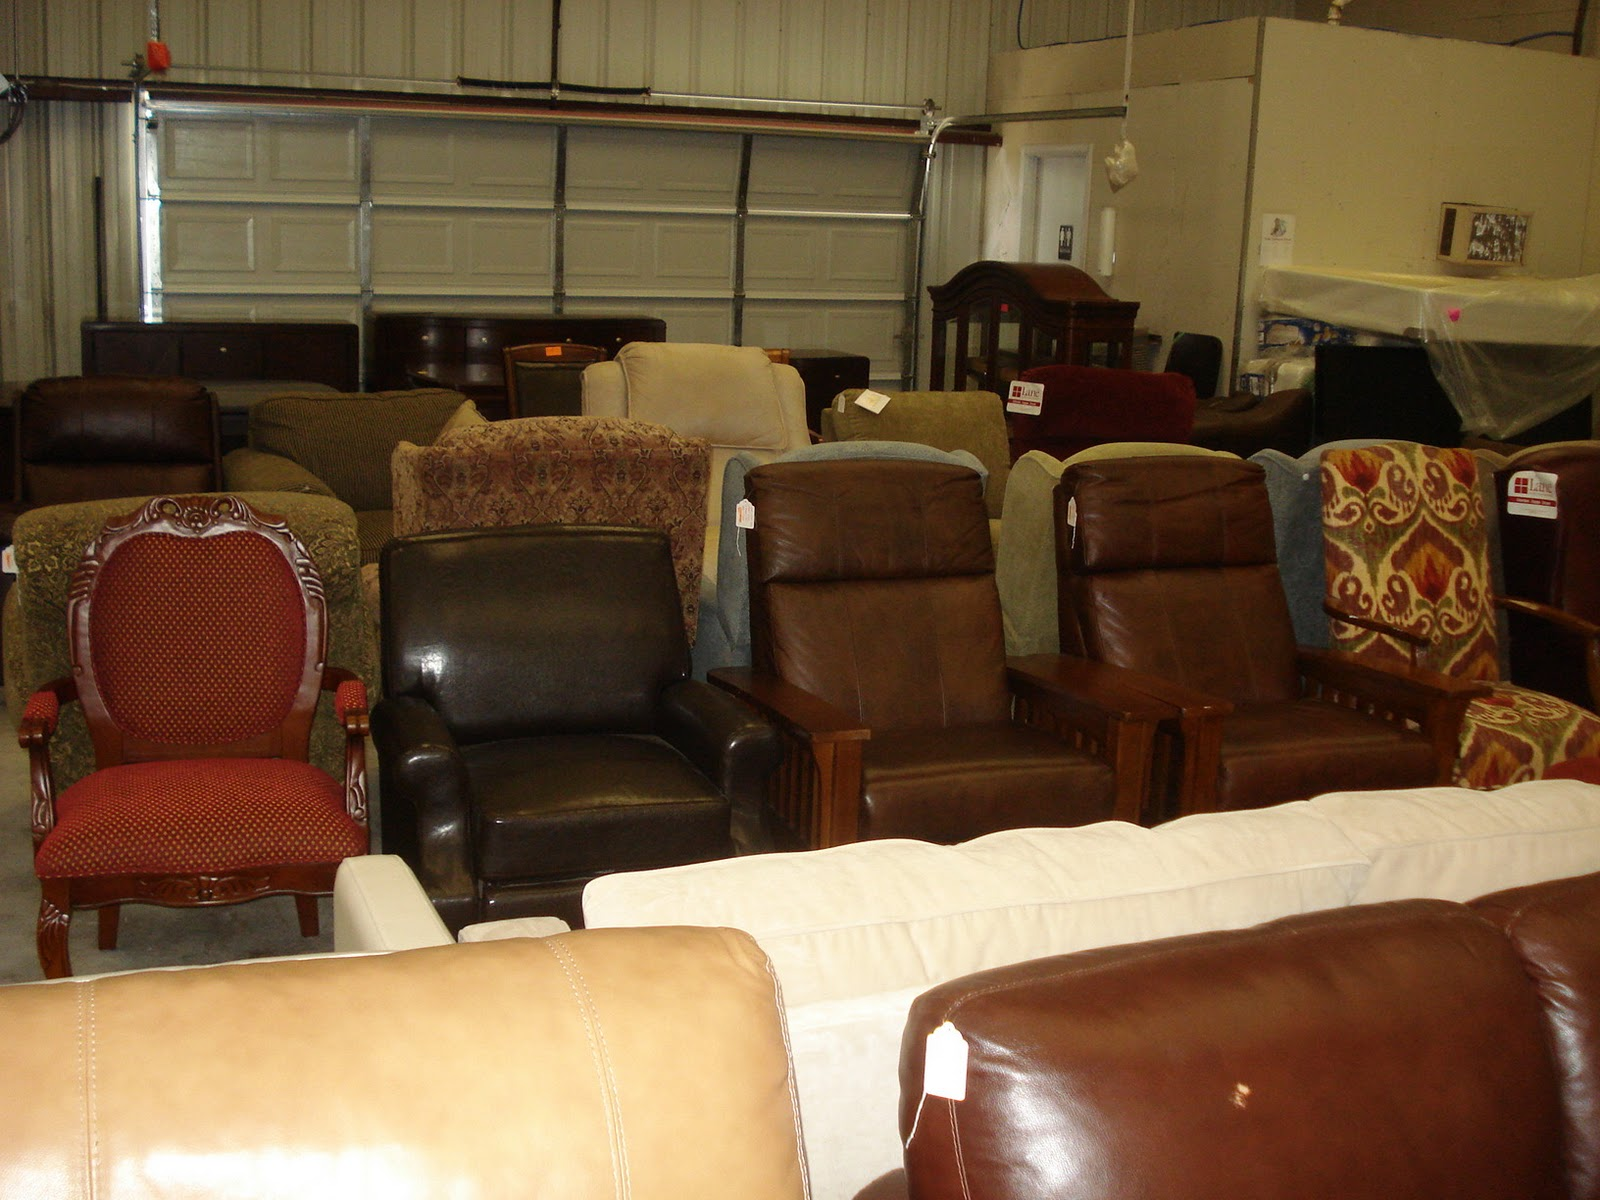 Furniture Stores Austin, TX - Austin's Couch Potatoes: Italian Leather